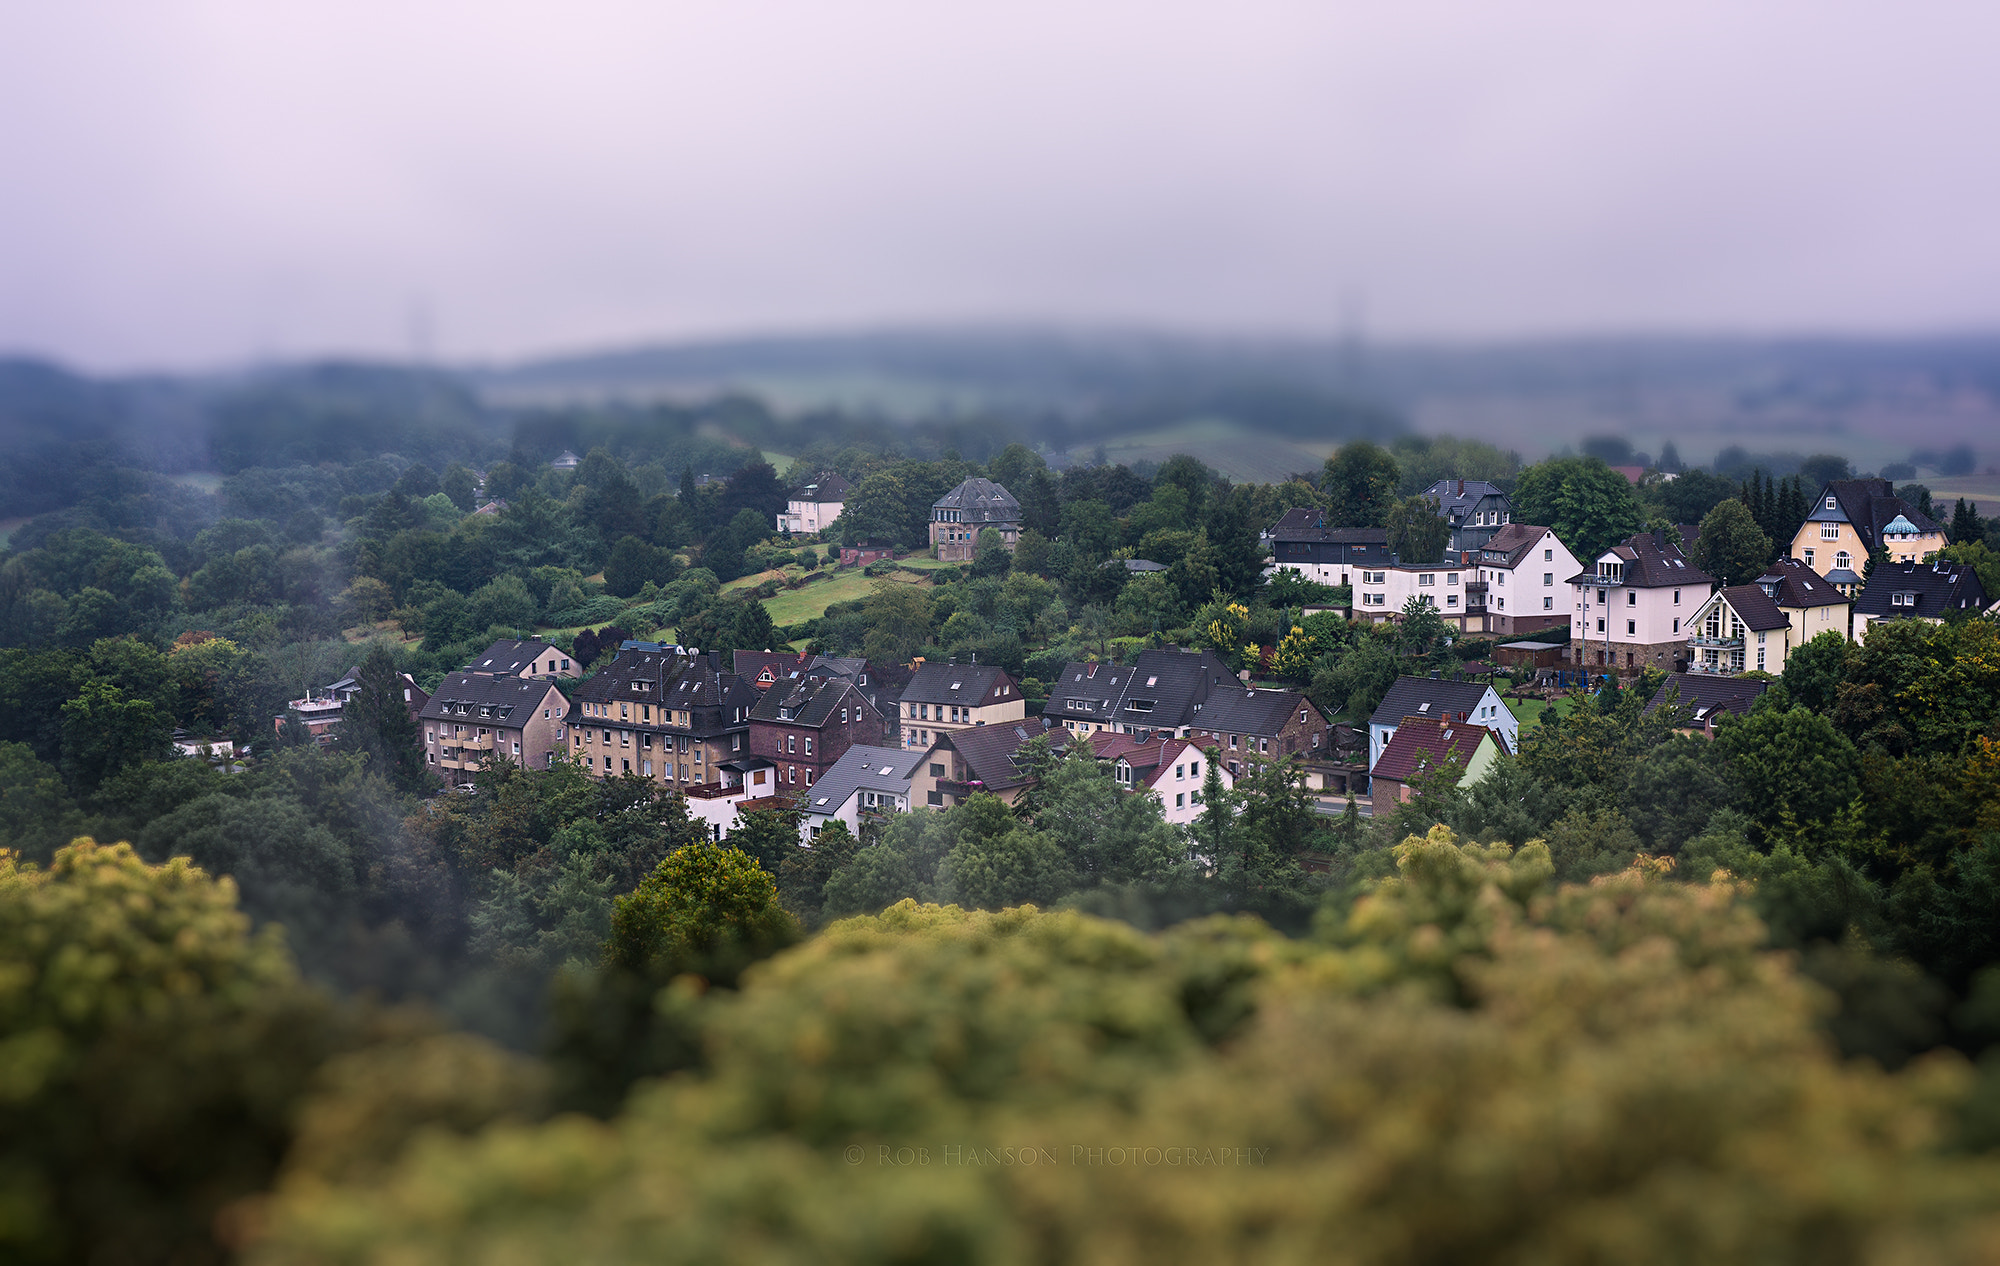 Photograph O' Little Town of Hattingen by Rob Hanson on 500px